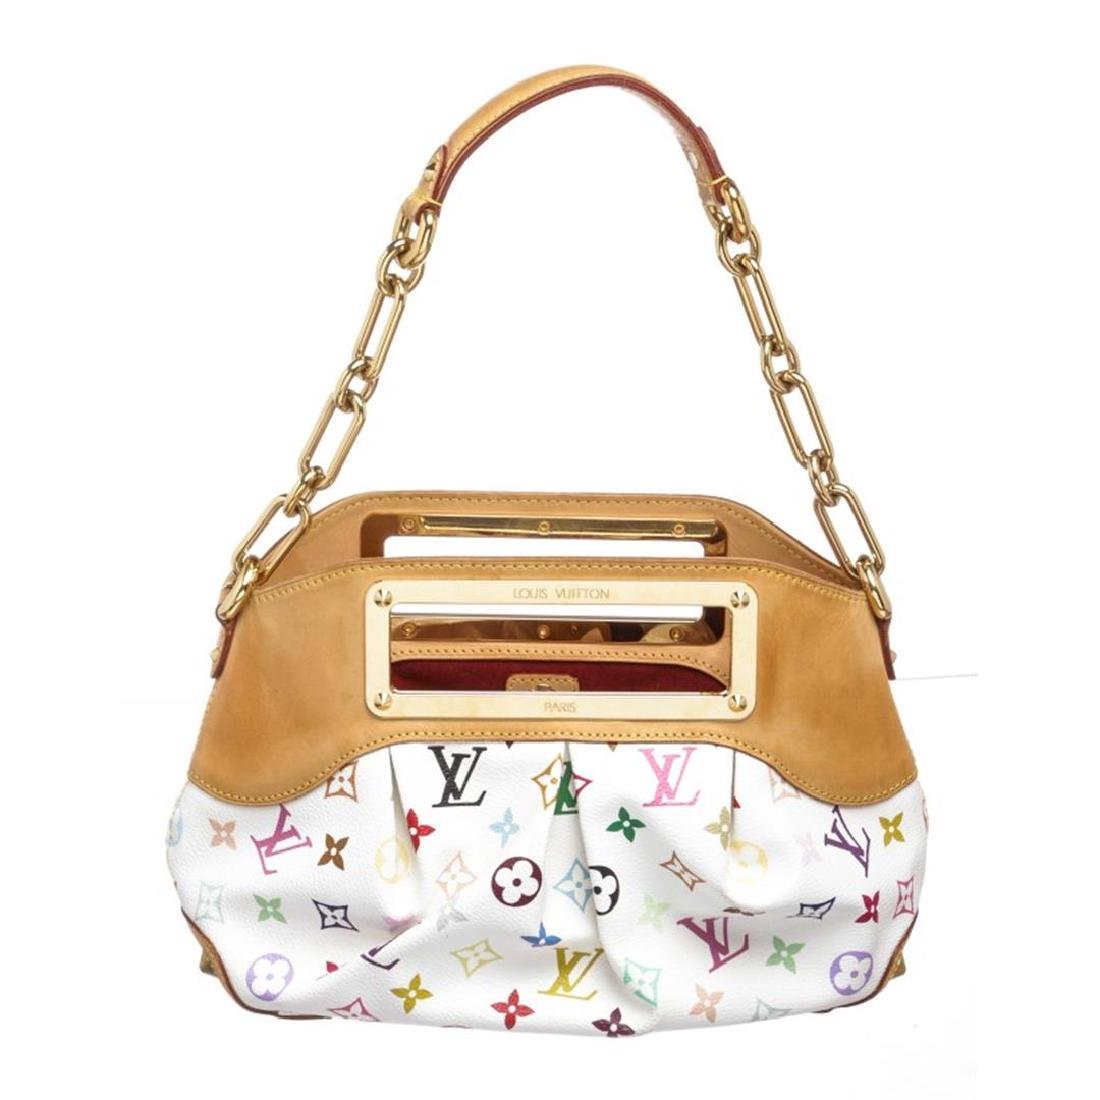 Louis Vuitton White Multicolor Judy MM Satchel Handbag